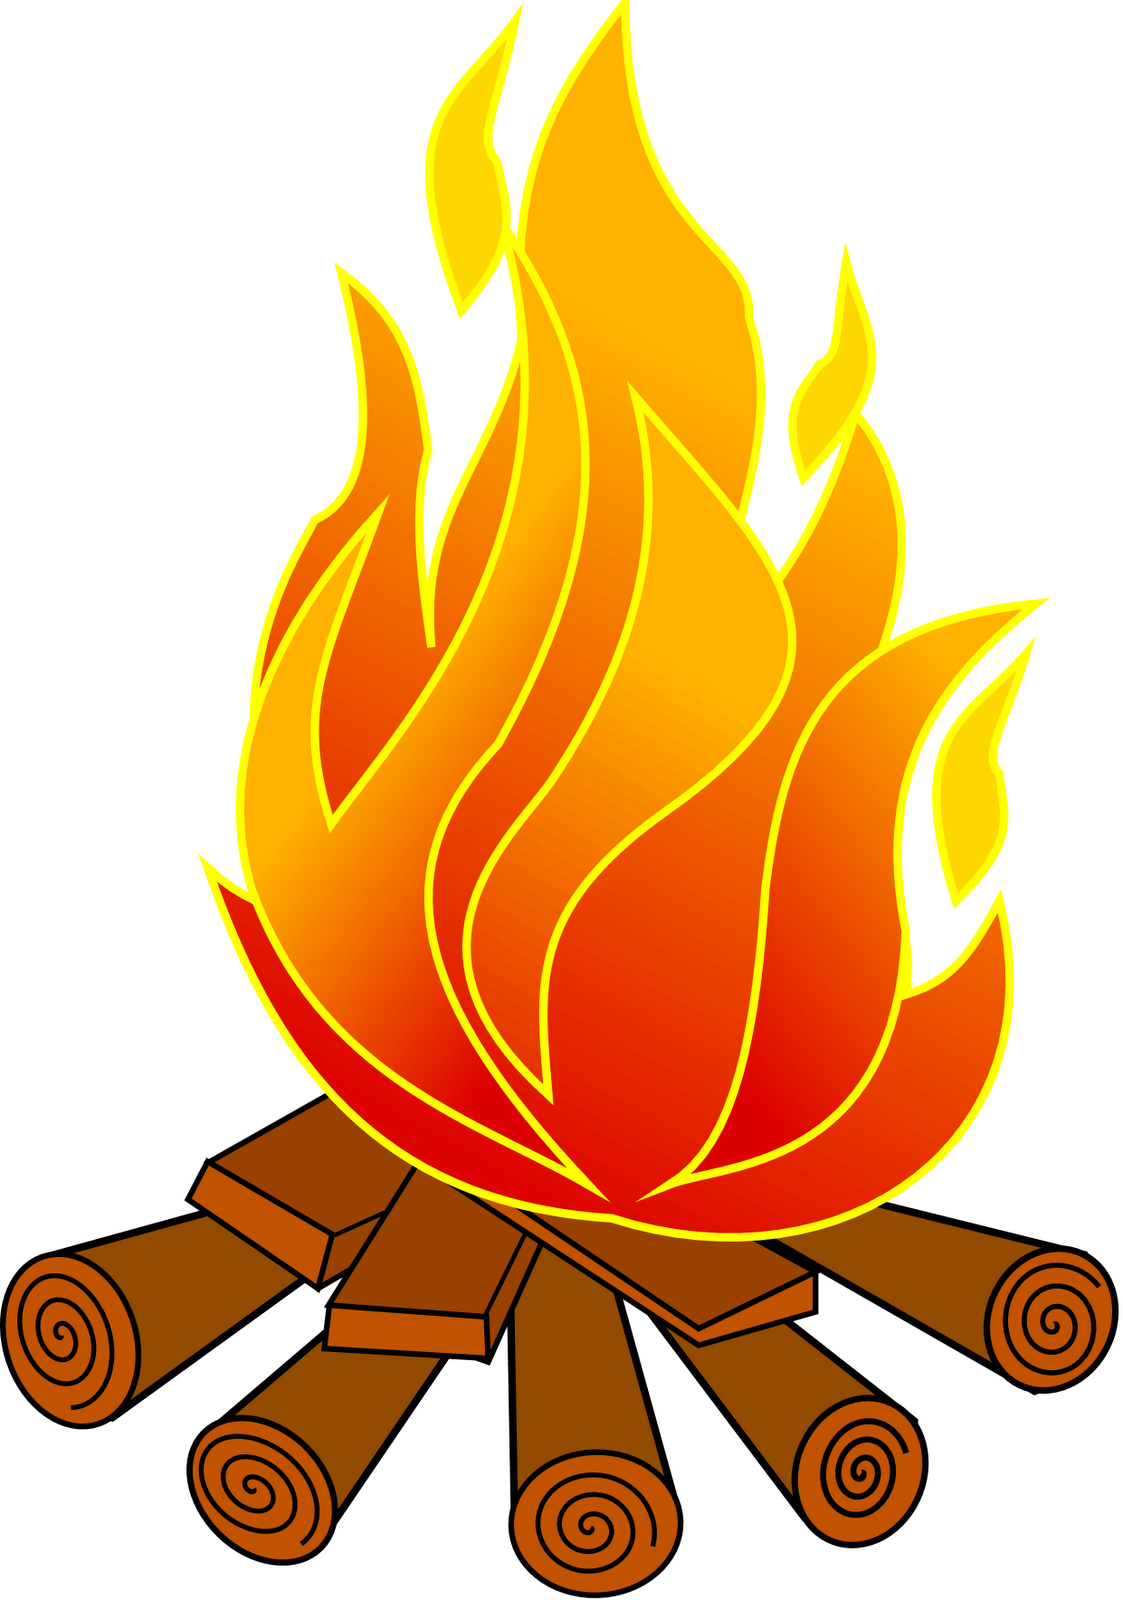 Planning clipart planning preparation. Campfire pinterest campfires and